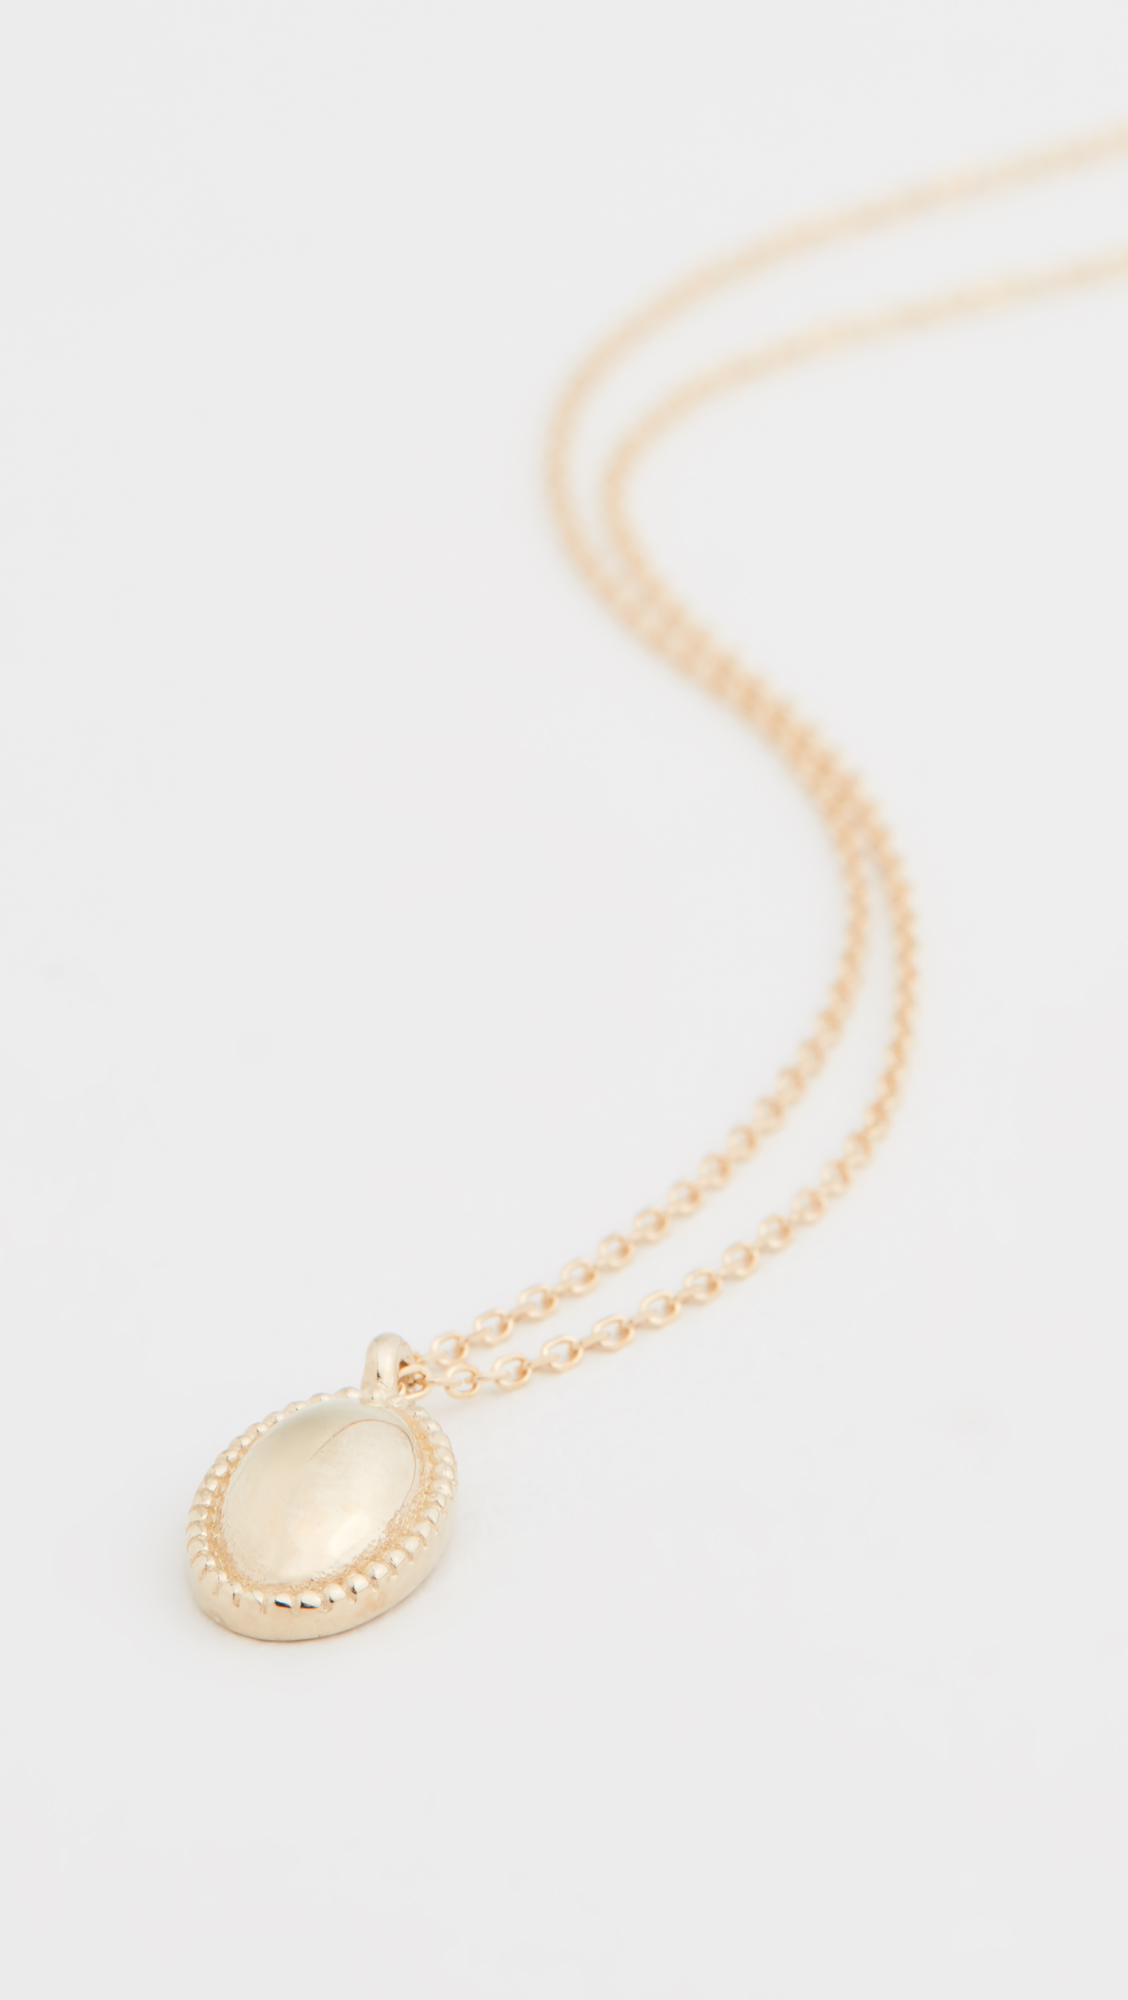 14 Karat Gold Oval Necklace